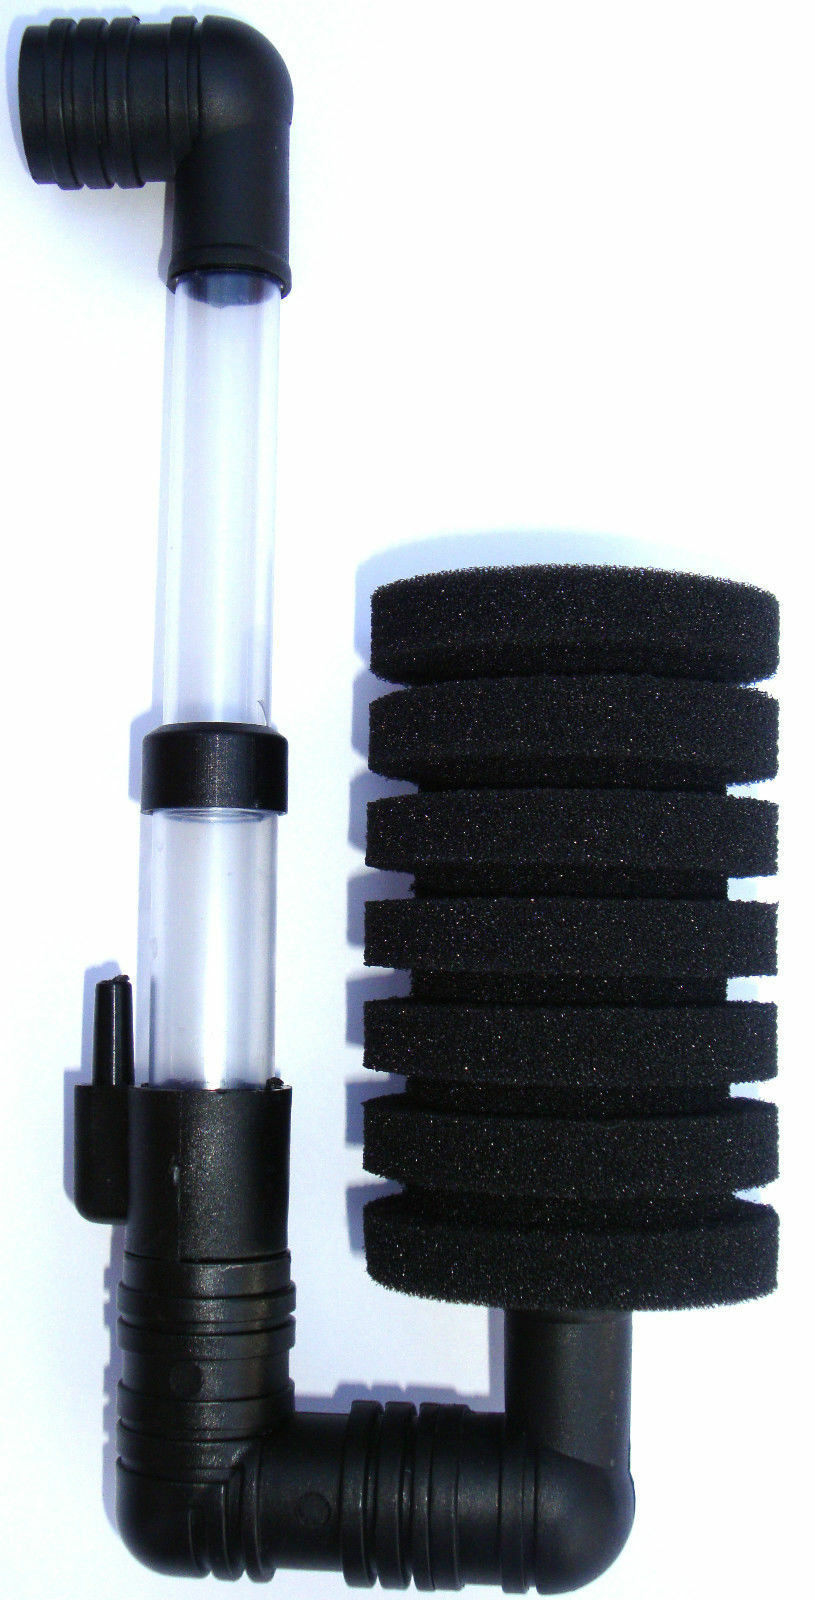 Aquarium Single Mini Sponge Filter 40lt Breeding Fry Discus NOVSF100 2830